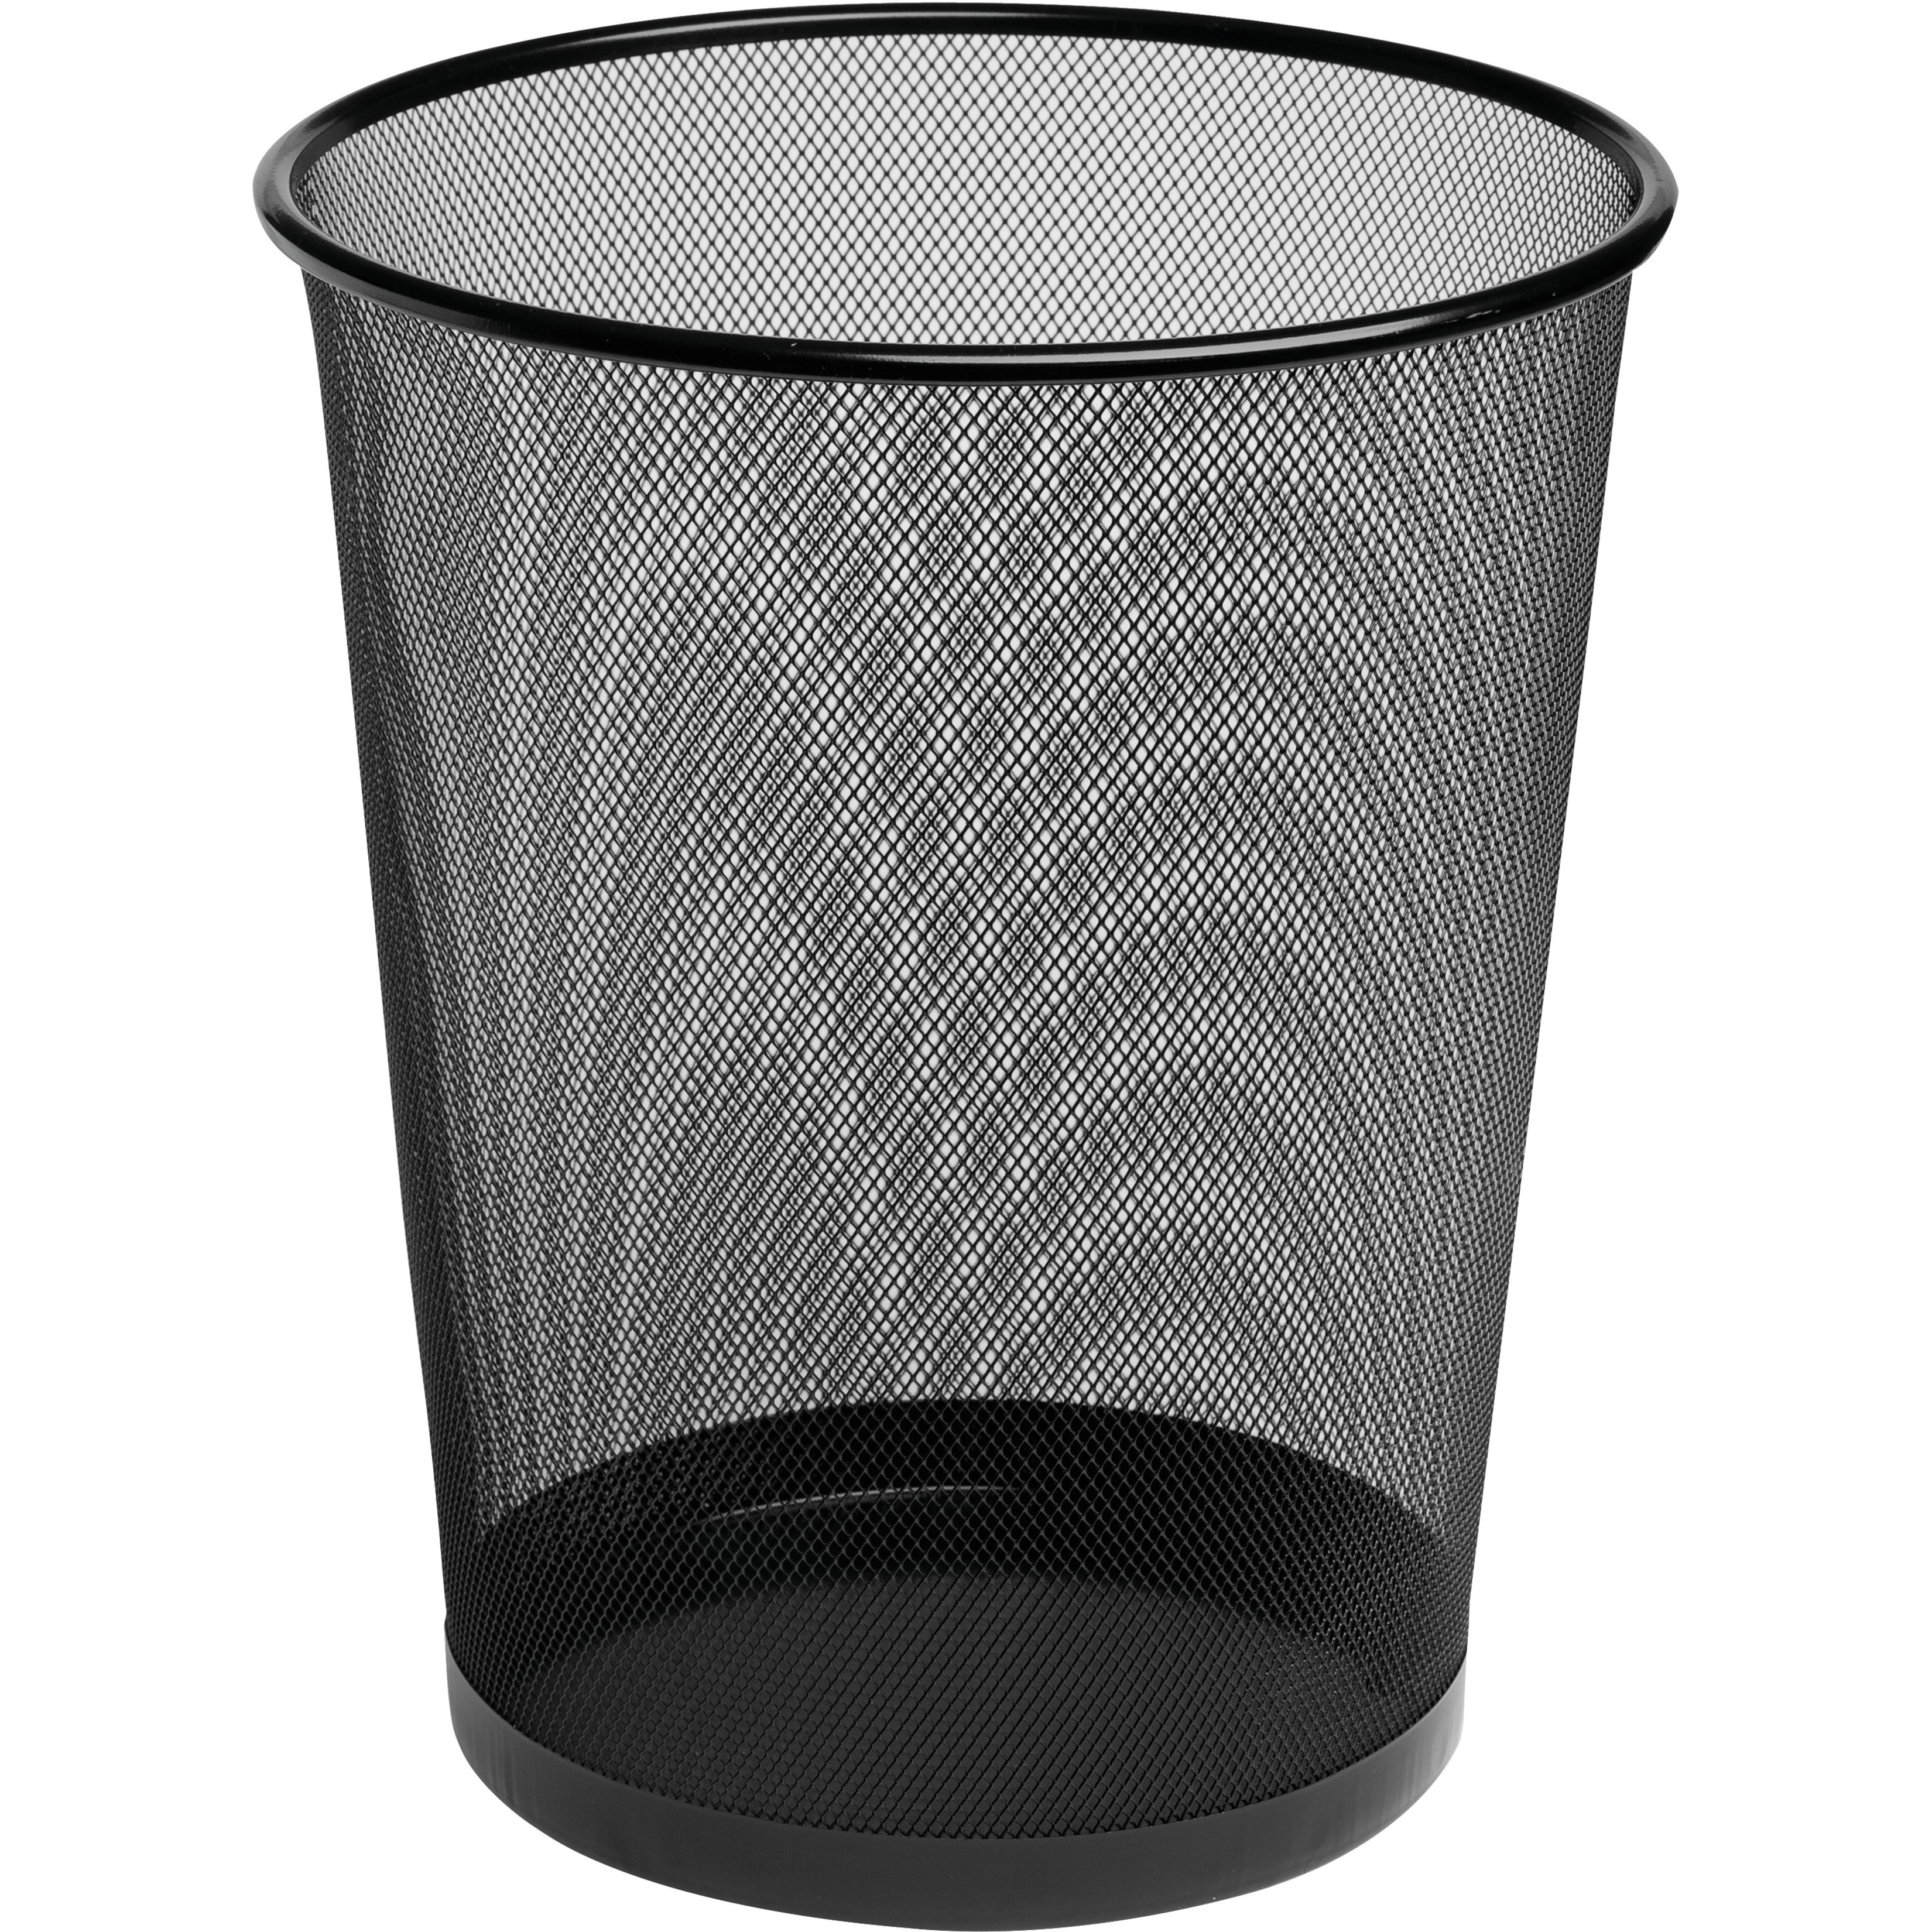 4 1/2 Gallon Steel Black Round Mesh Trash Can